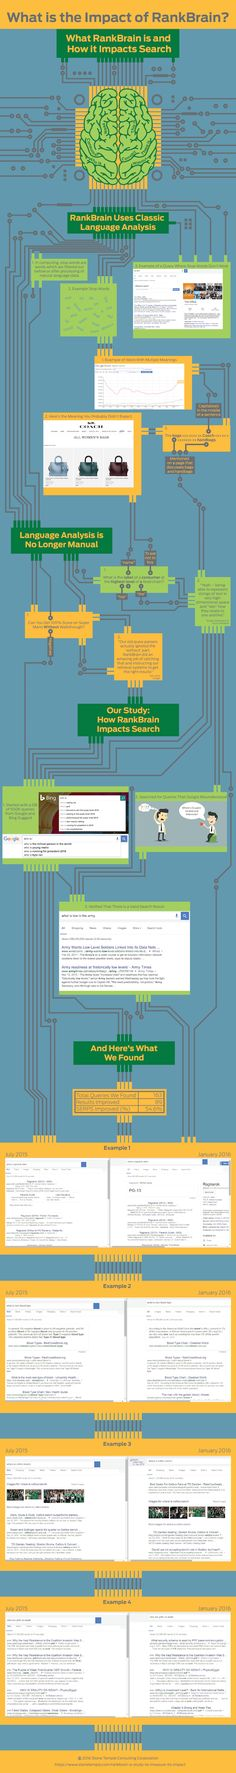 Impact of Google RankBrain on Search (infographic)